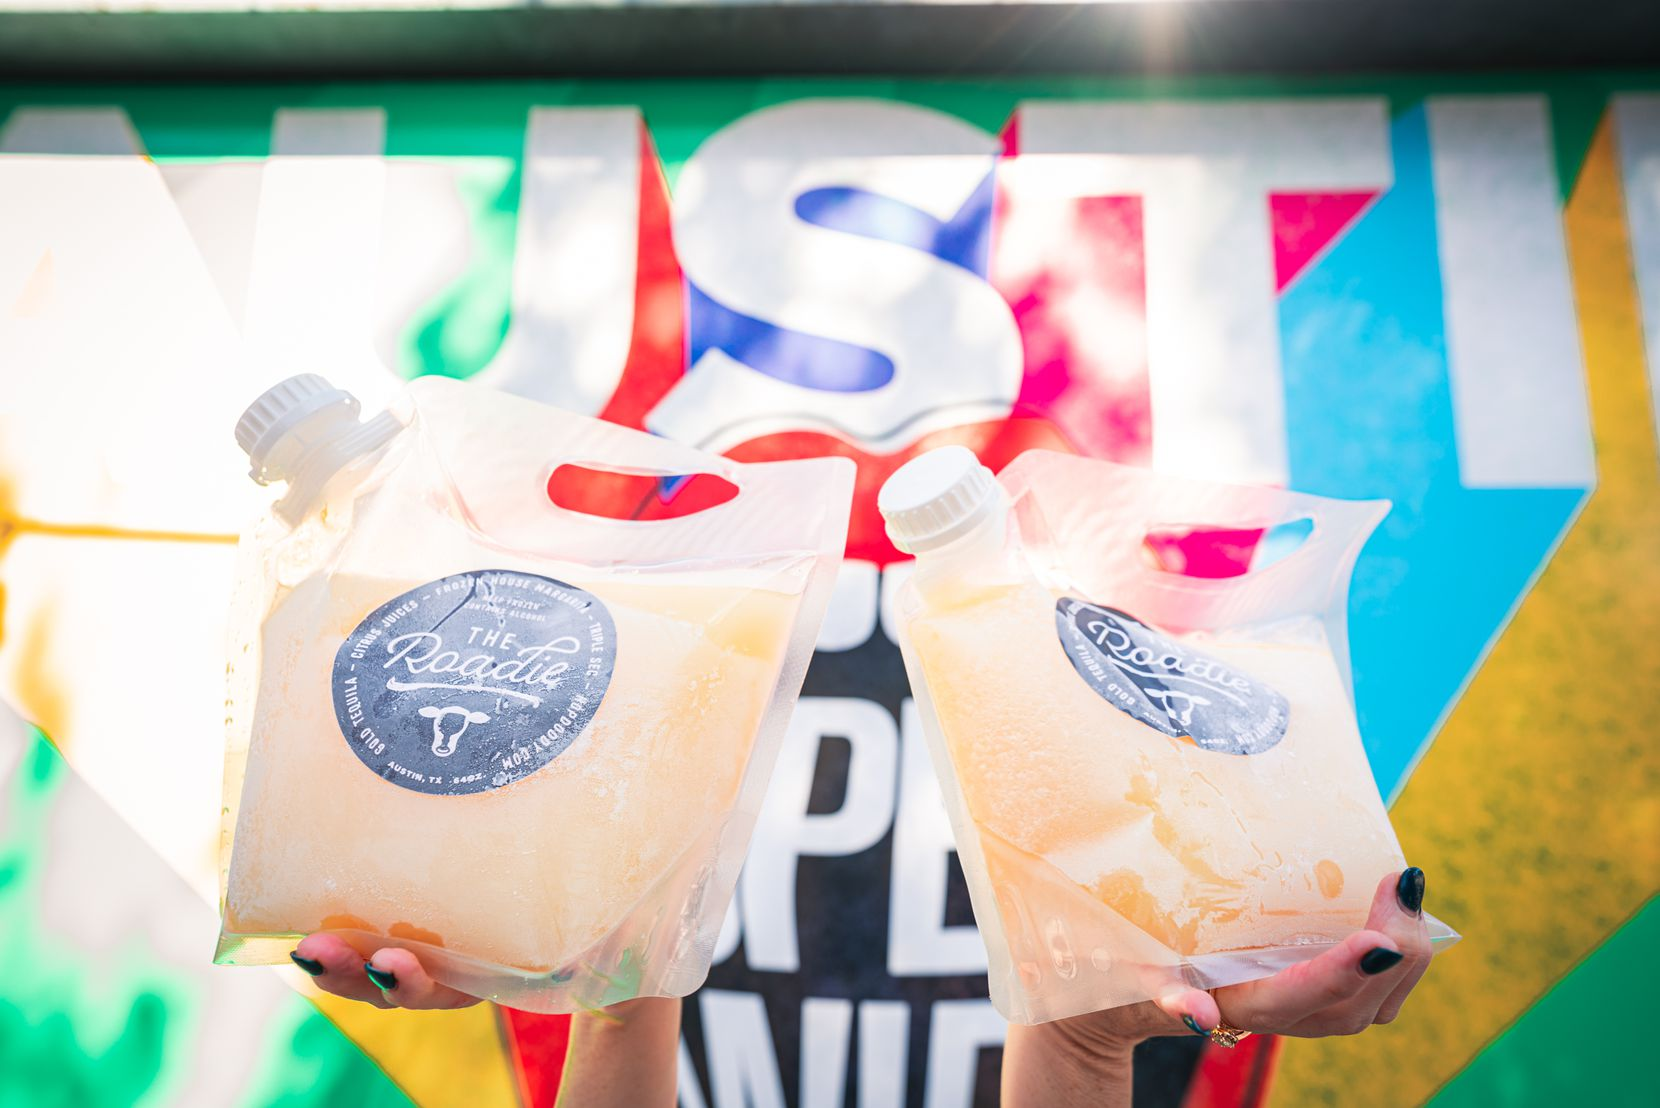 For National Tequila Day, try Hopdoddy's Roadie, a half-gallon bag of frozen house margarita that can be shared.